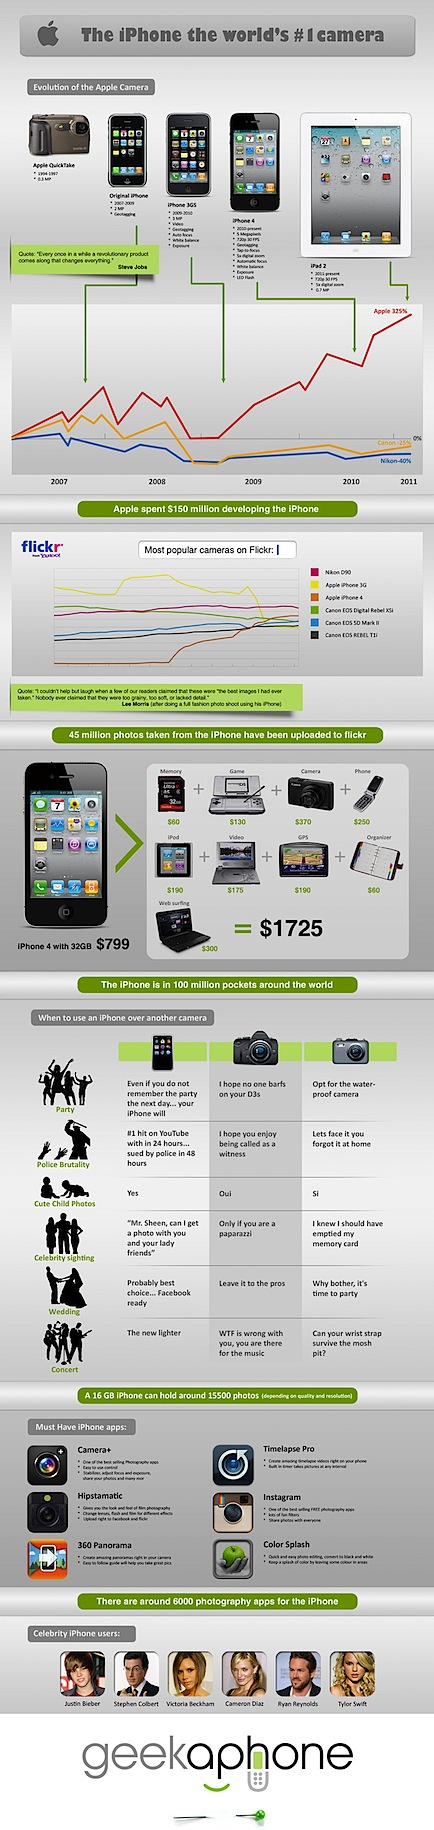 iPhone_Infographic_800px.jpg